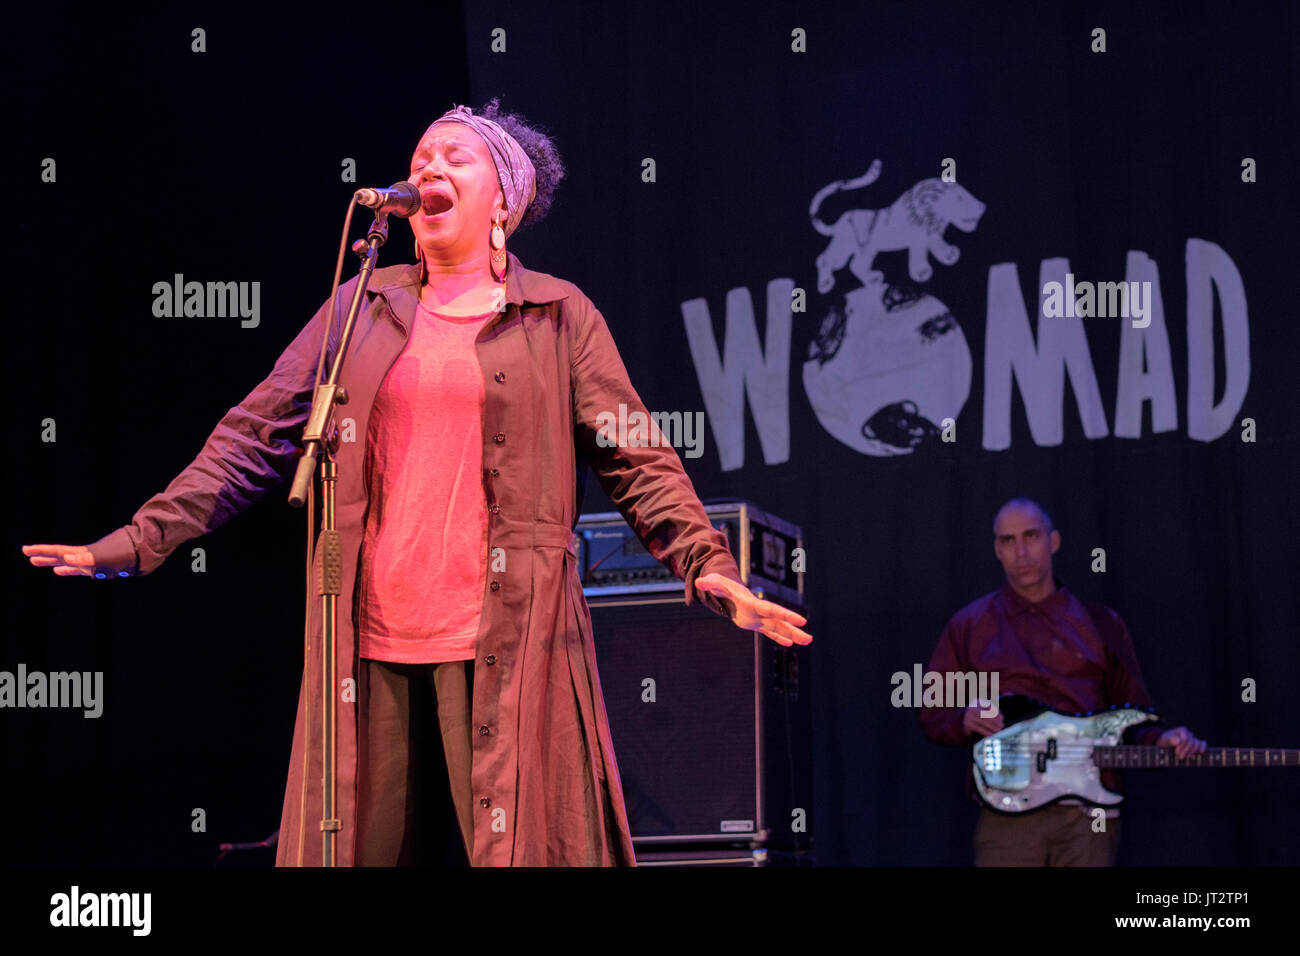 Jucara Marcal of Meta Meta performing at the WOMAD Festival, Charlton Park, Malmesbury, Wiltshire, England, July 28, 2017 - Stock Image